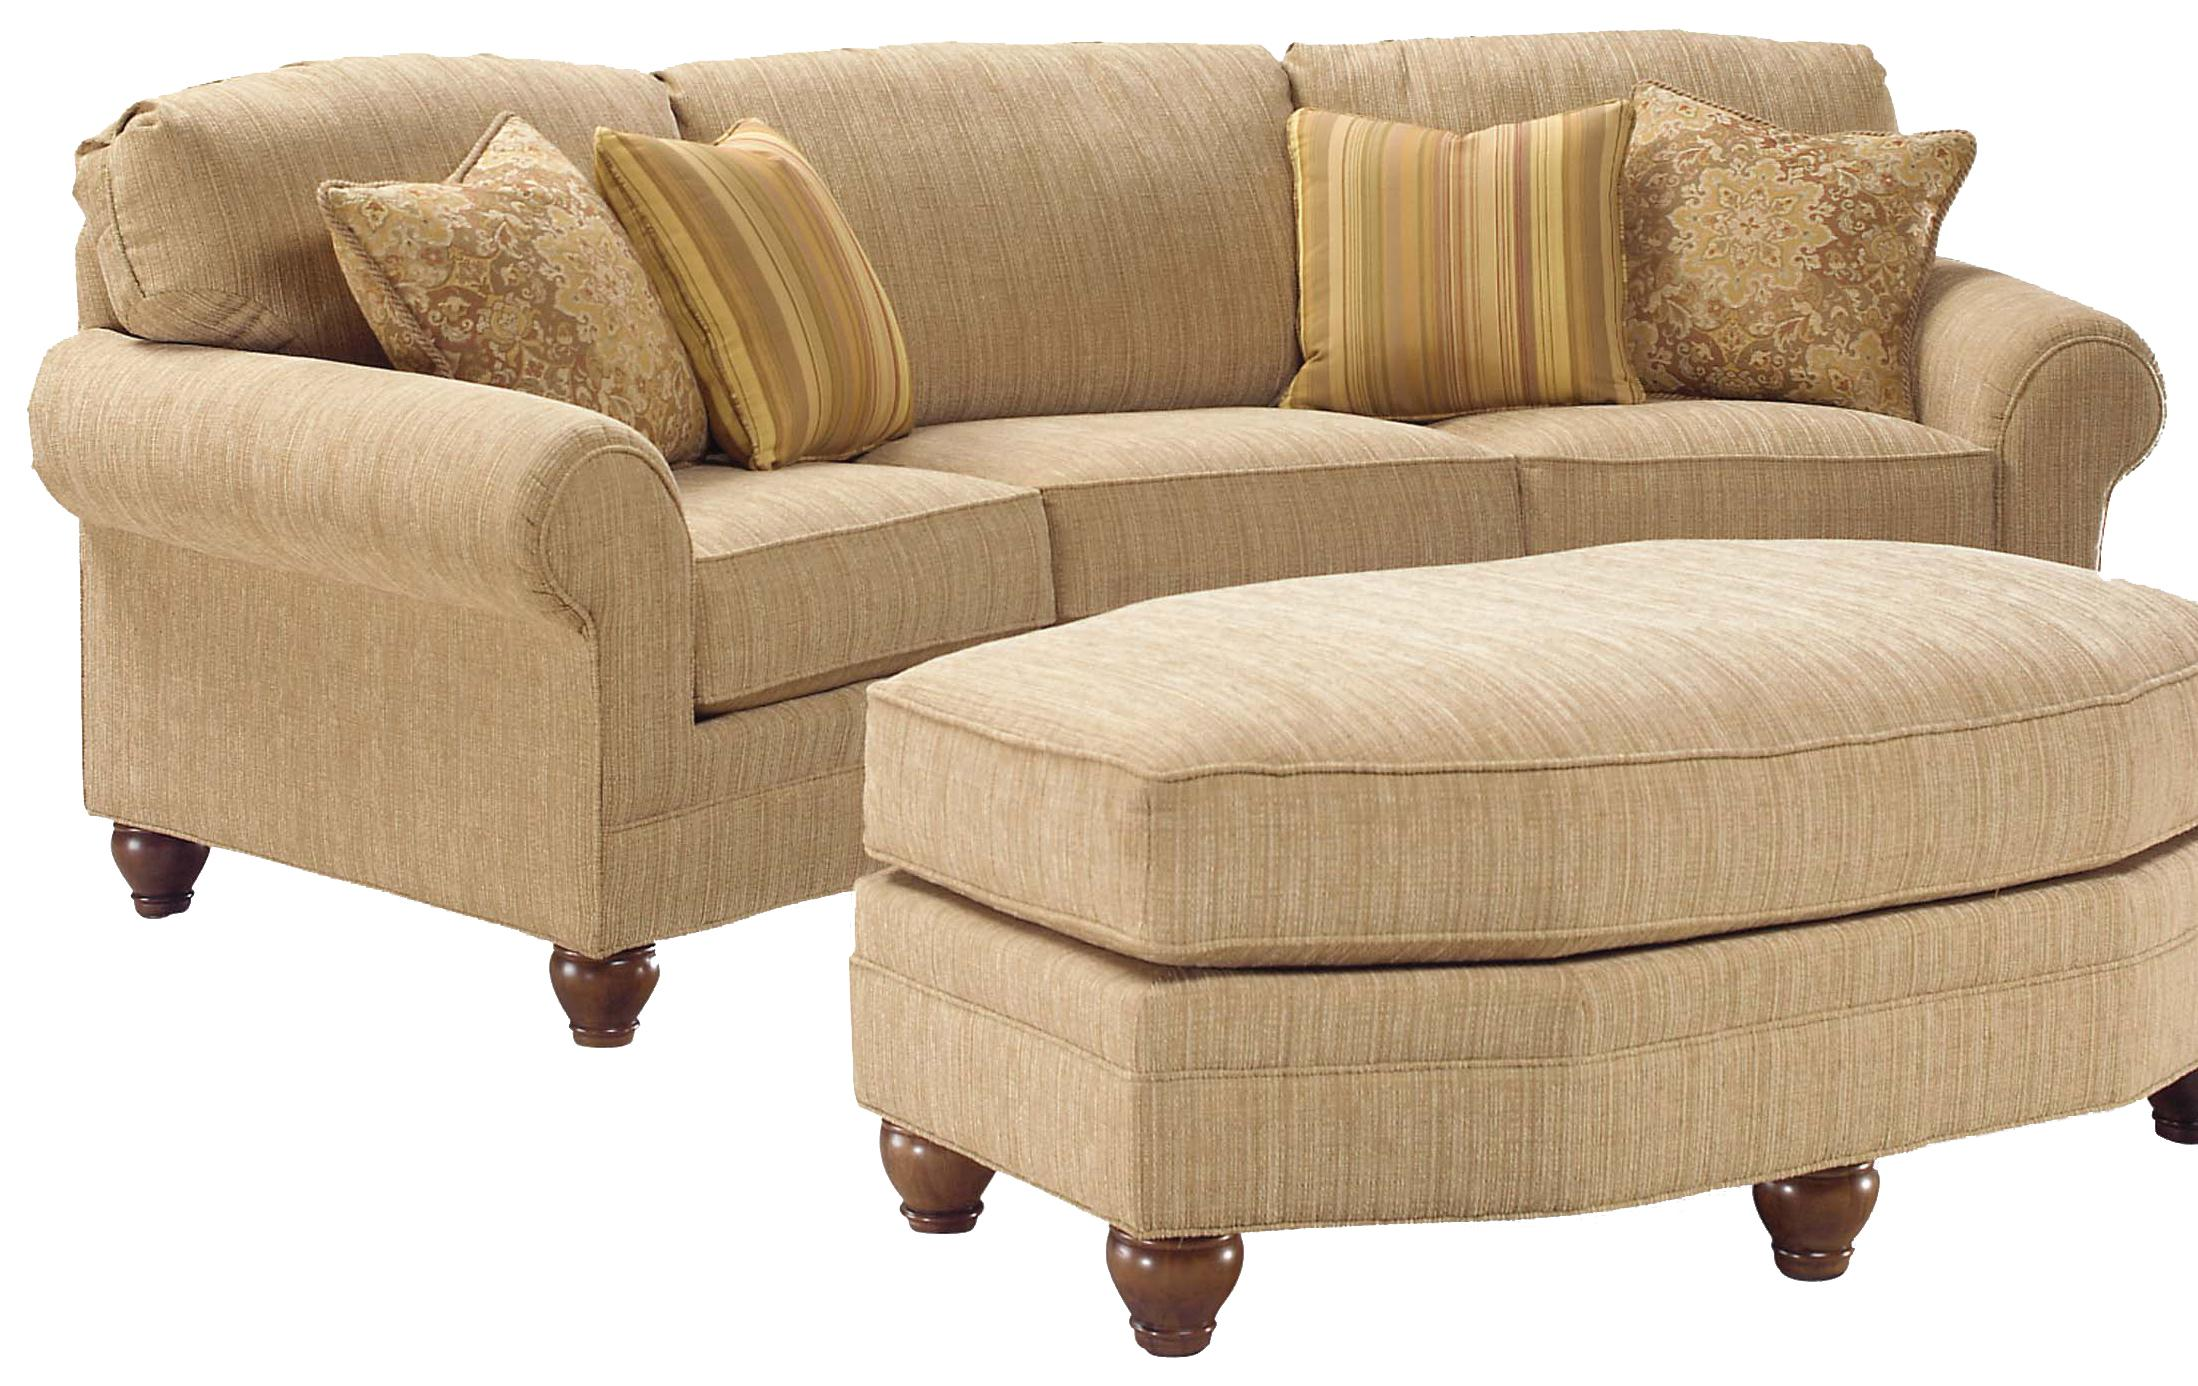 3768 Curved Sofa by Fairfield at Lindy's Furniture Company